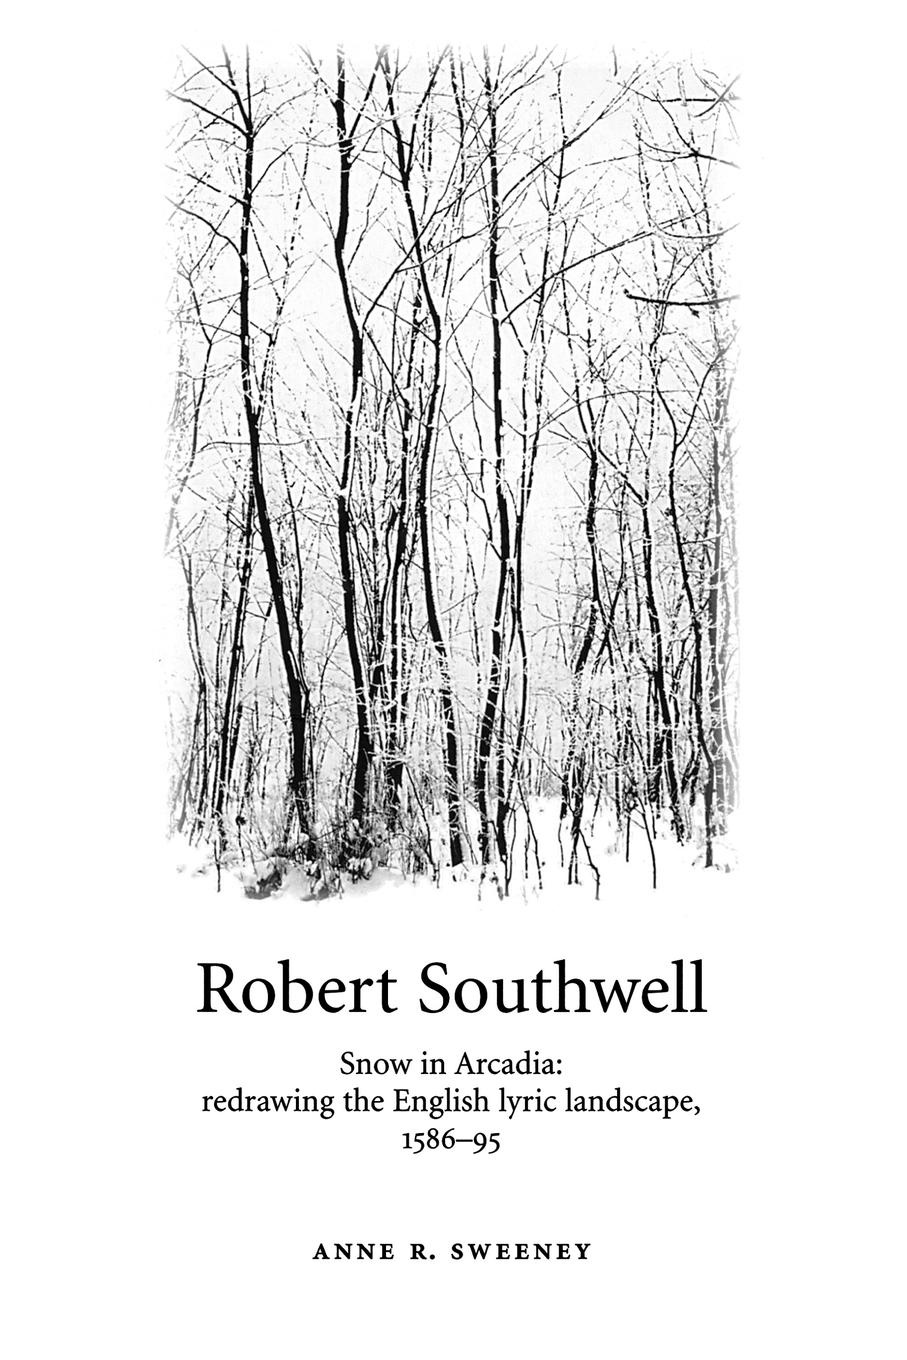 Anne R. Sweeney Robert Southwell. Snow in Arcadia: Redrawing the English Lyric Landscape, 1586-95